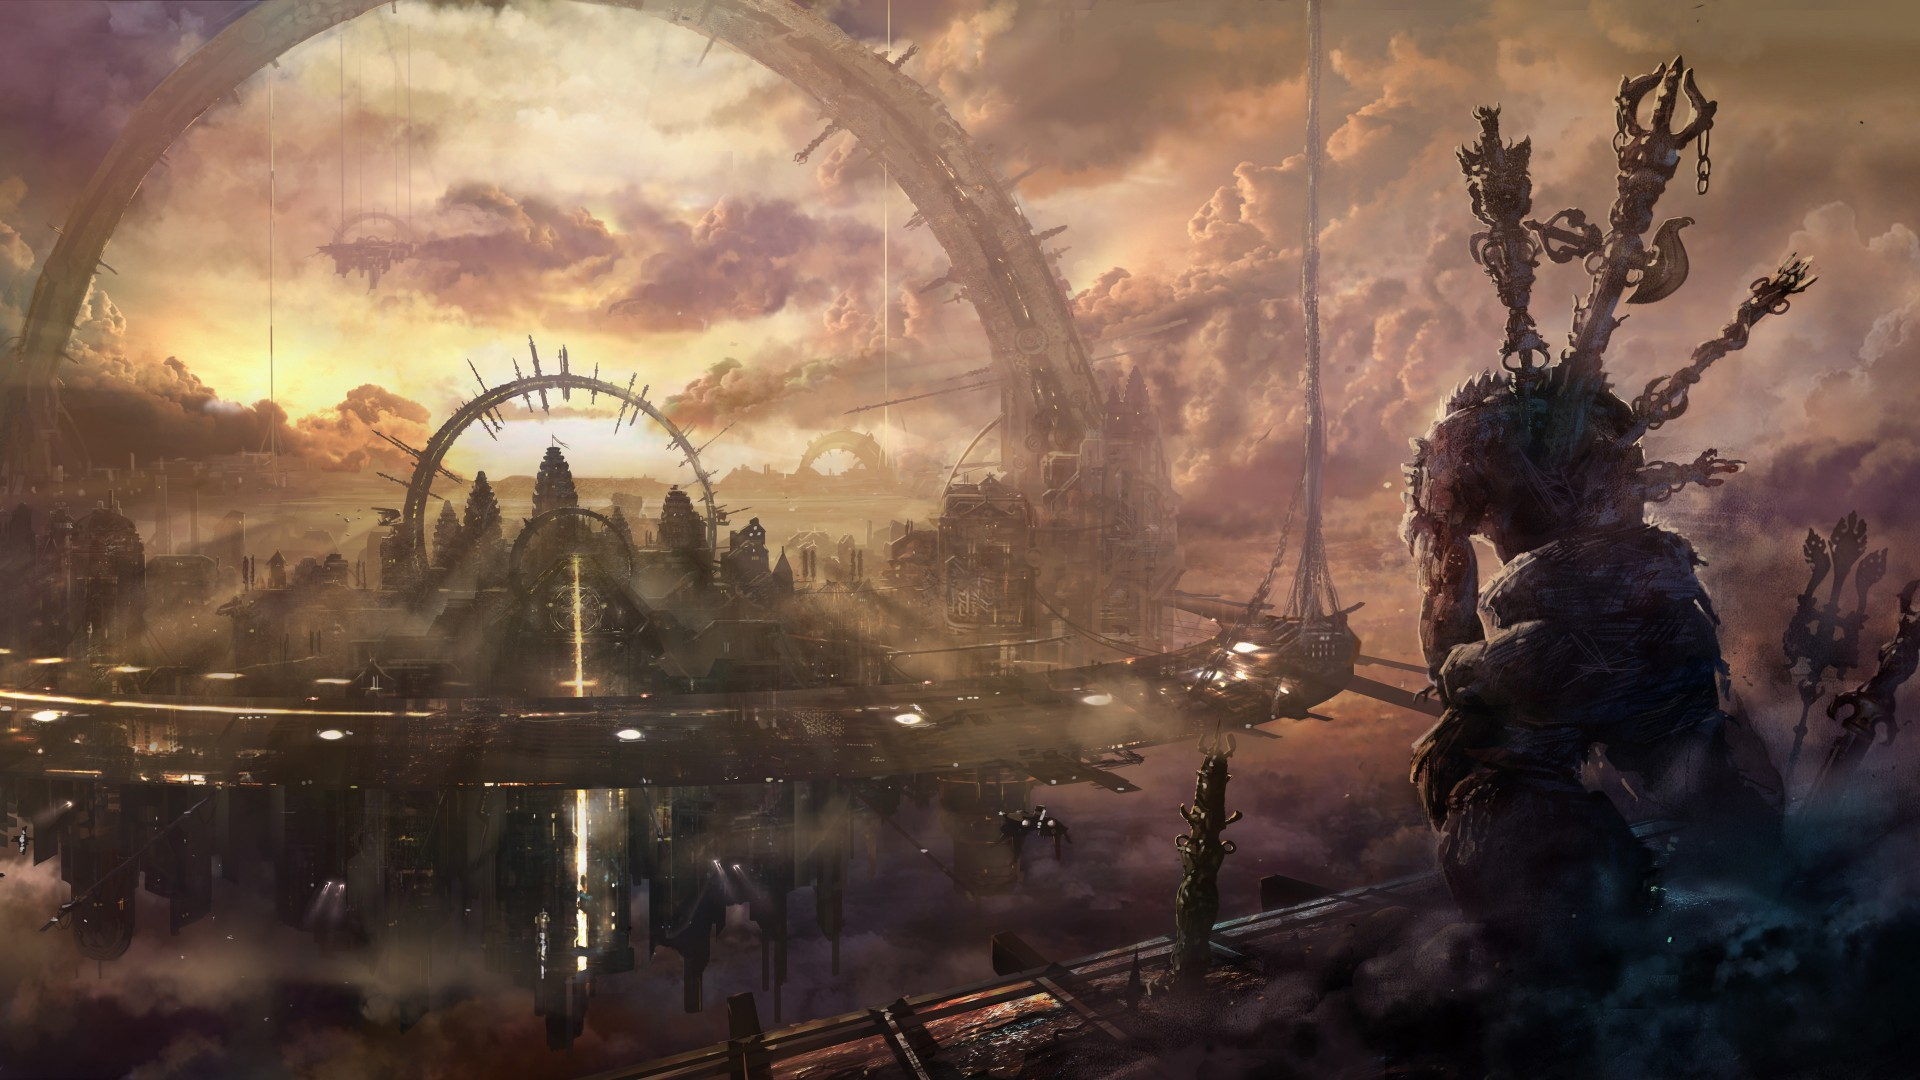 Wallpaper Killzone Shadow Fall Wallpaper Heaven City Arch Building Space Station